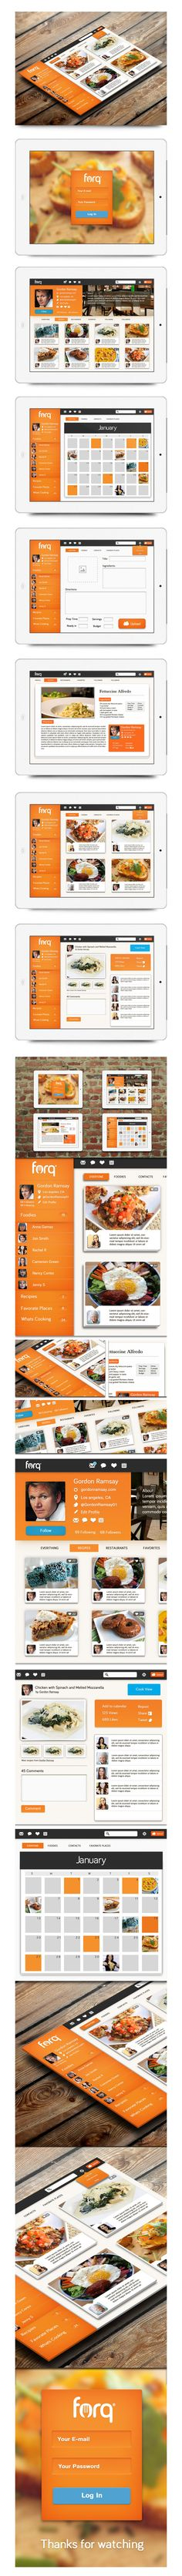 FORQ - Food Network App by Isaac Sanchez, via Behance *** Forq is a social network for foodies. Social networks already exist, and so do recipe and food sites, but not the cross-over. Forq will be the coolest mobile app (phone tablet) for foodies that wa Interface Web, User Interface Design, Mobile Ui Design, App Ui Design, Tablet Ui, Design Digital, Mobile App Ui, Application Design, Ui Web